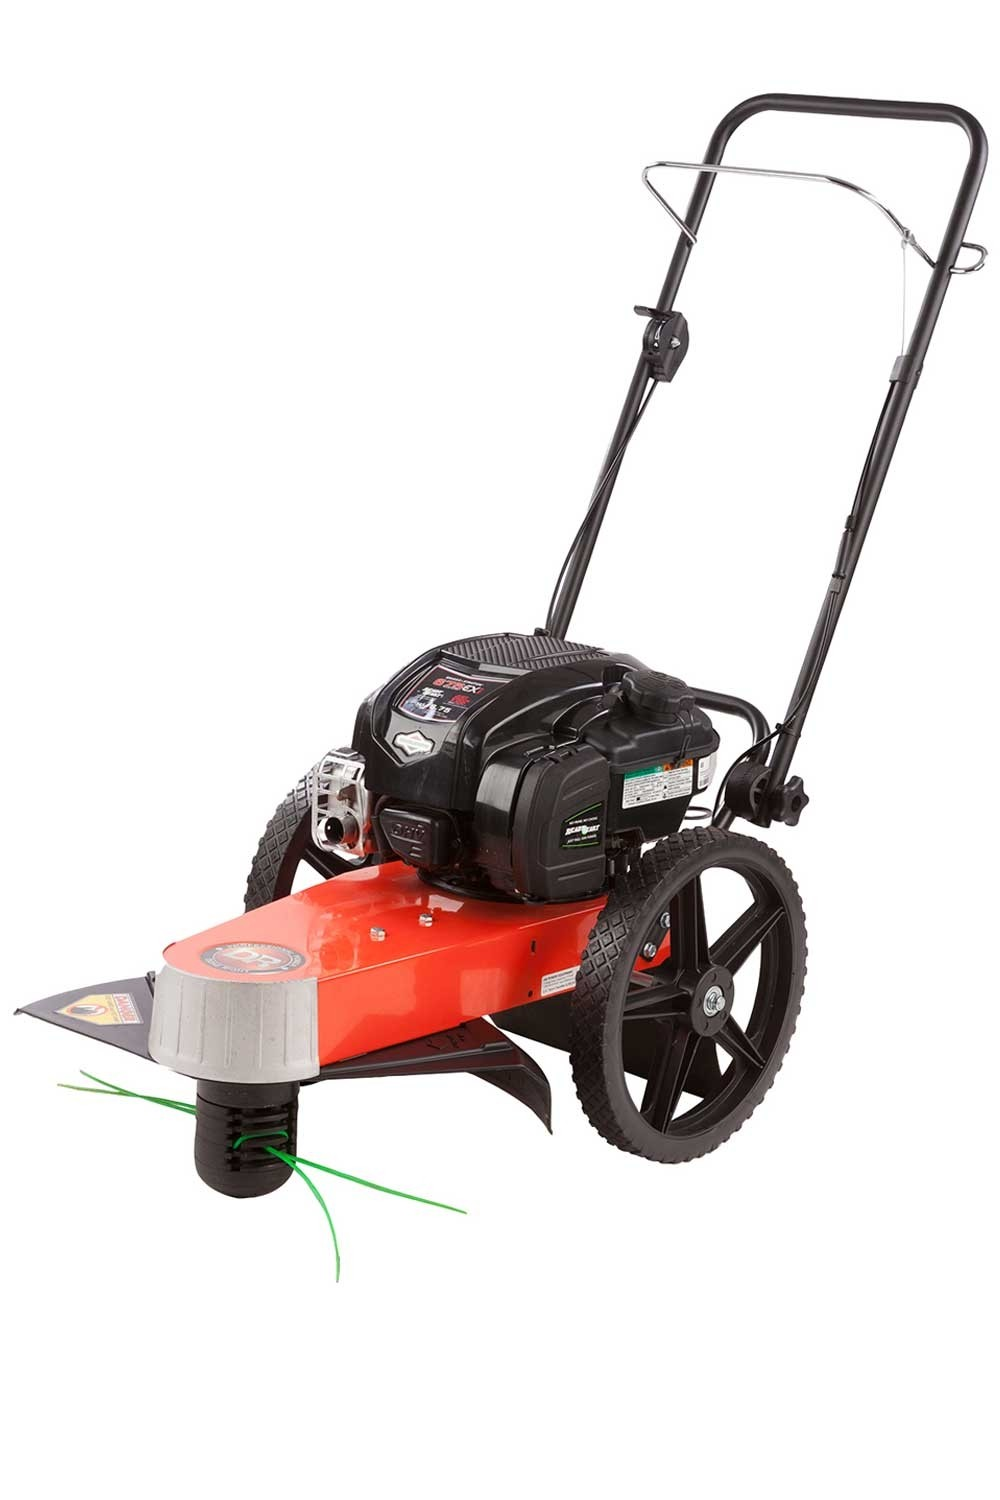 DR 6.75 PREMIER Trimmer Mower (Manual Start)